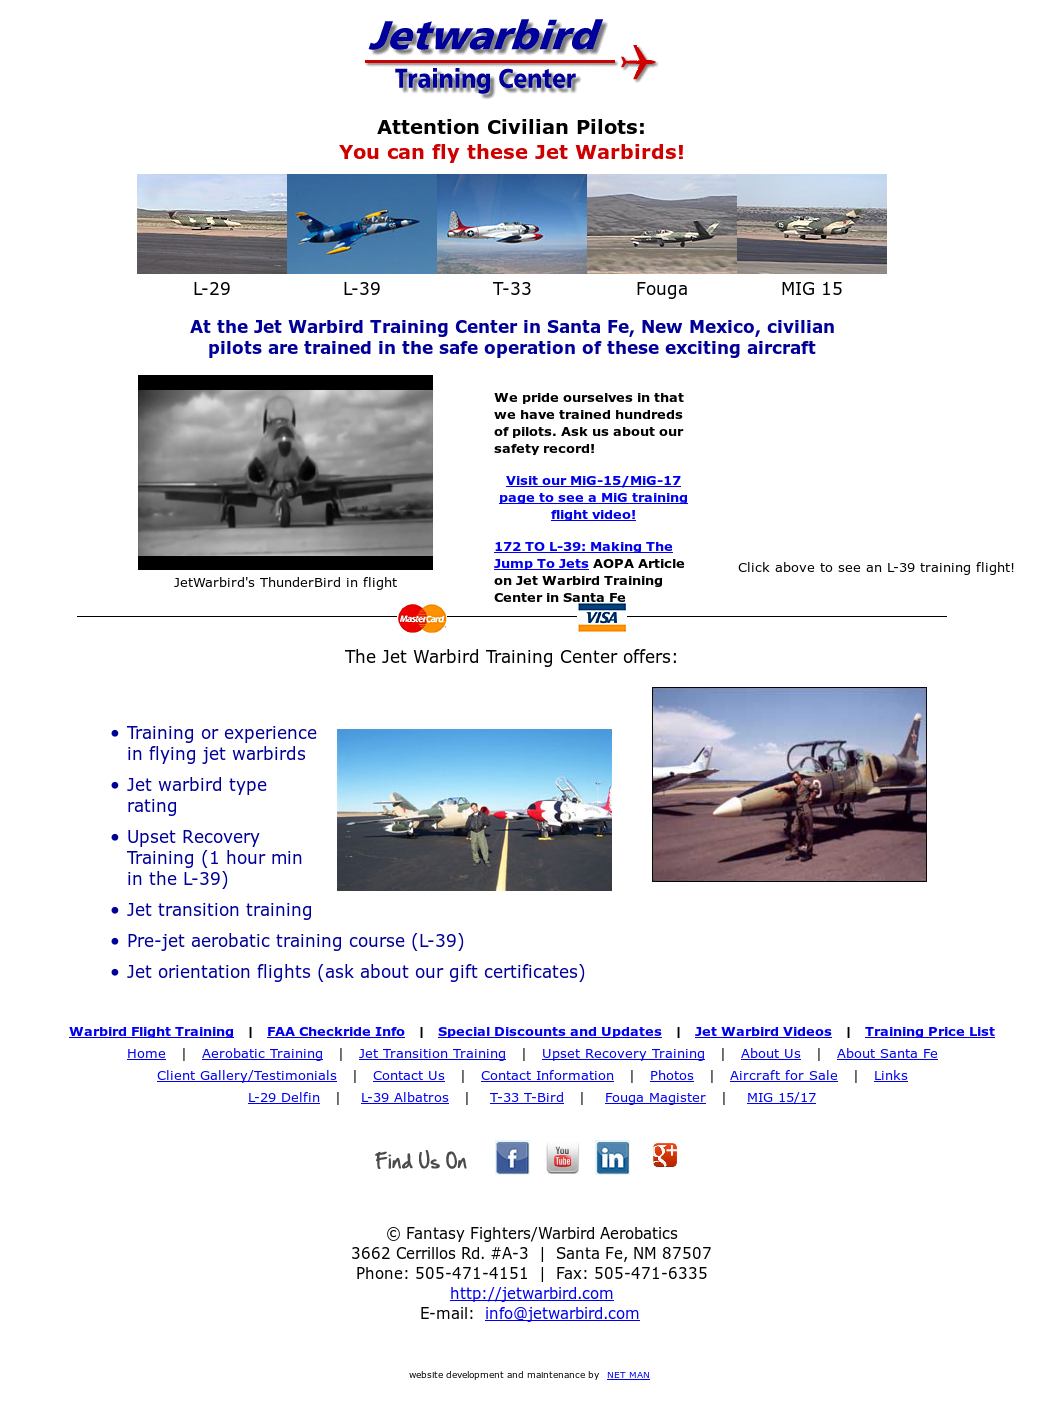 Jet Warbird Training Center Competitors, Revenue and